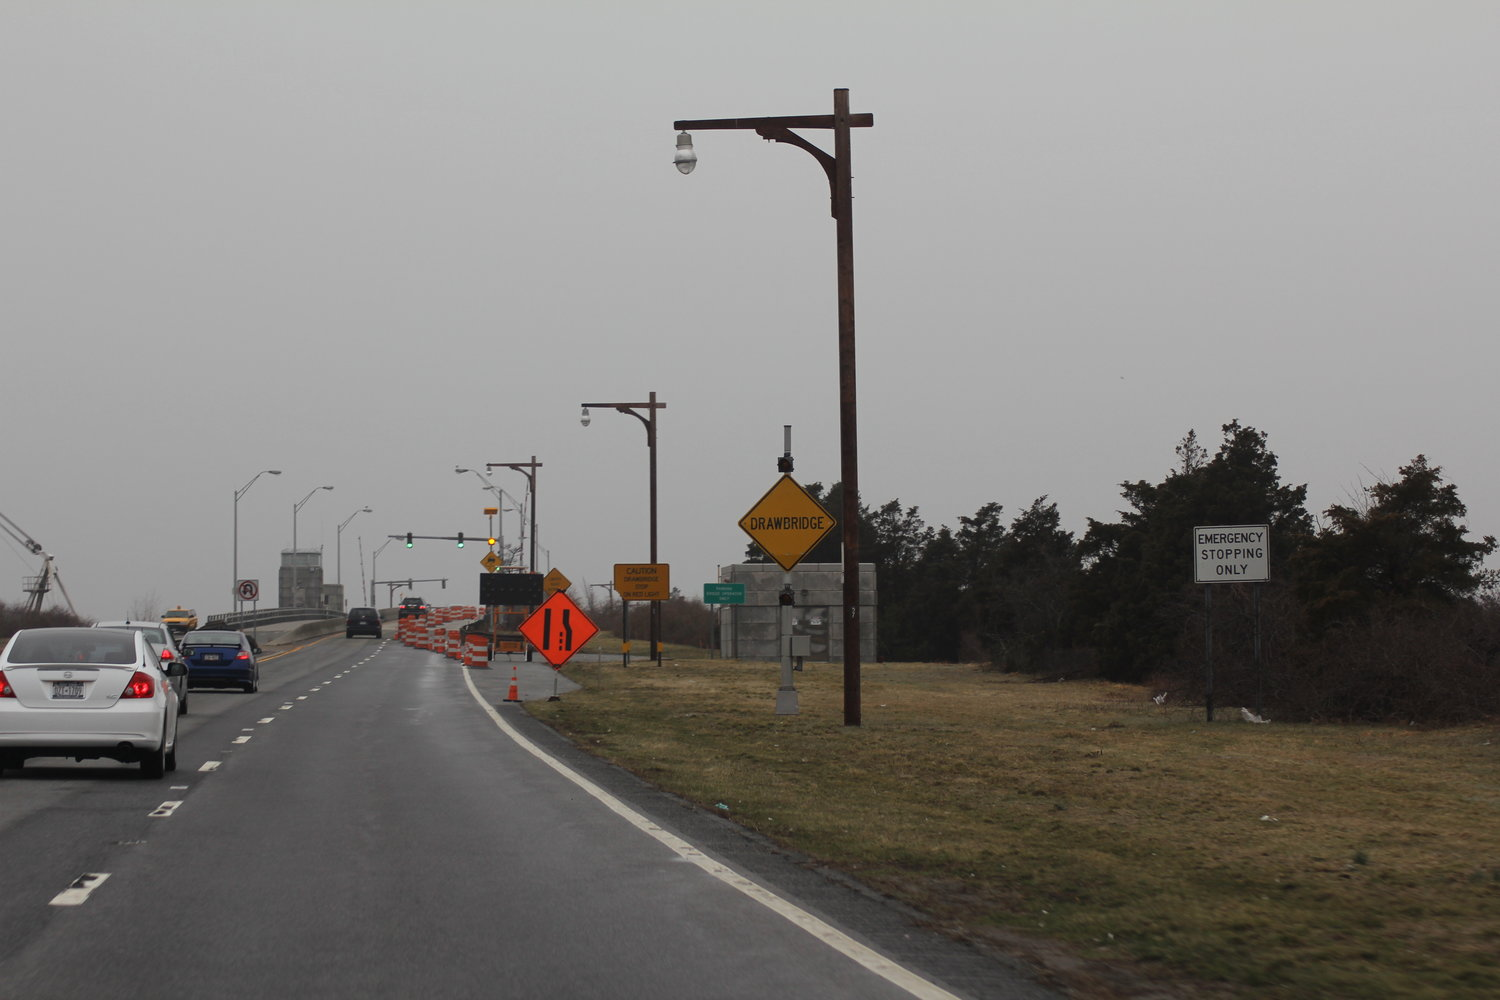 Loop Parkway exit M10 will be closed on Thursday.